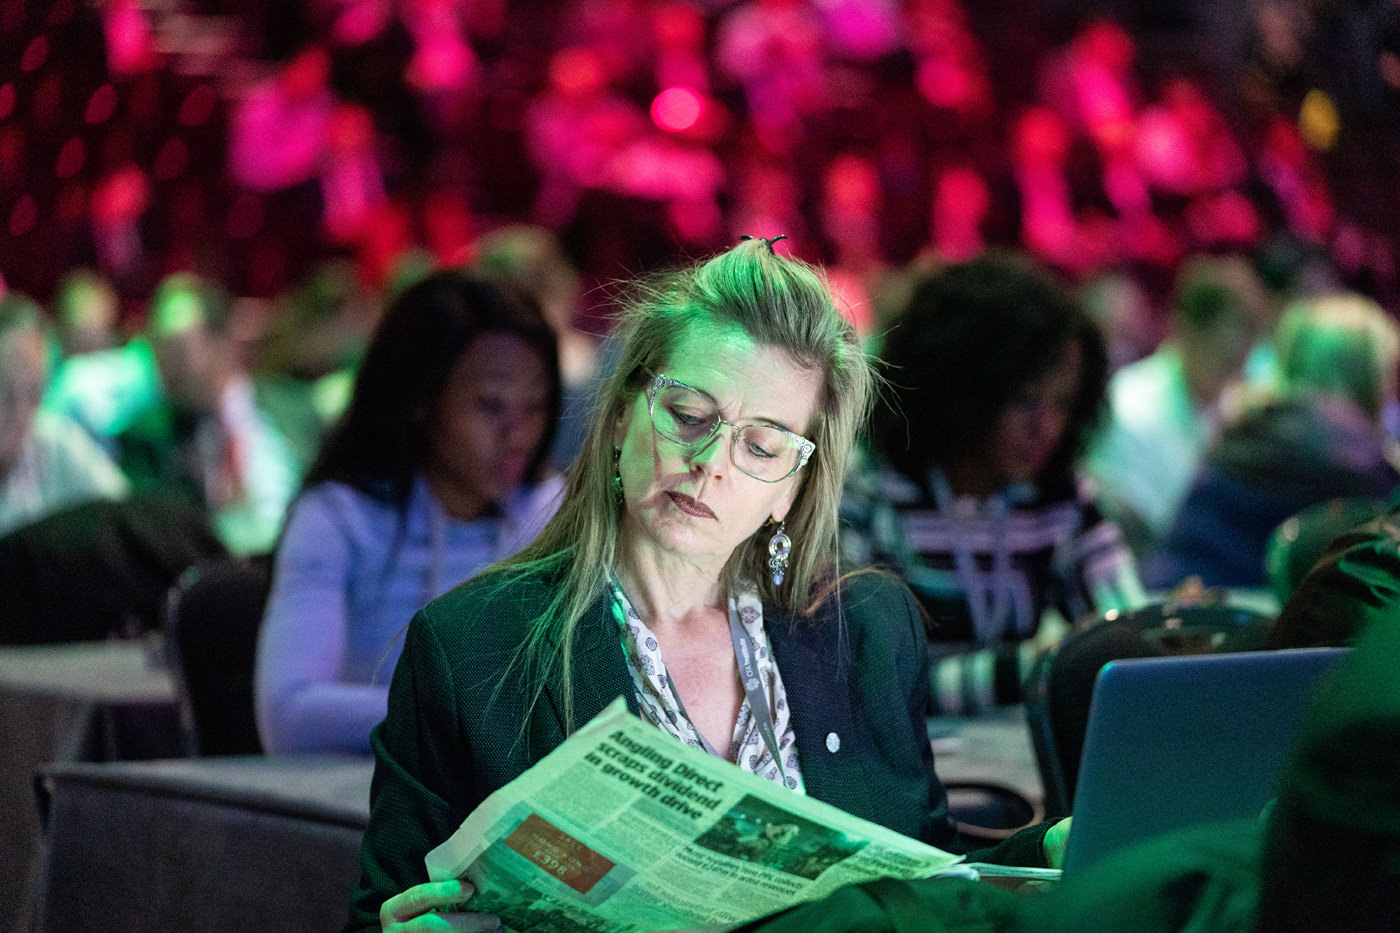 A delegate reads a newspaper at the CFA Annual Conference ExCel London